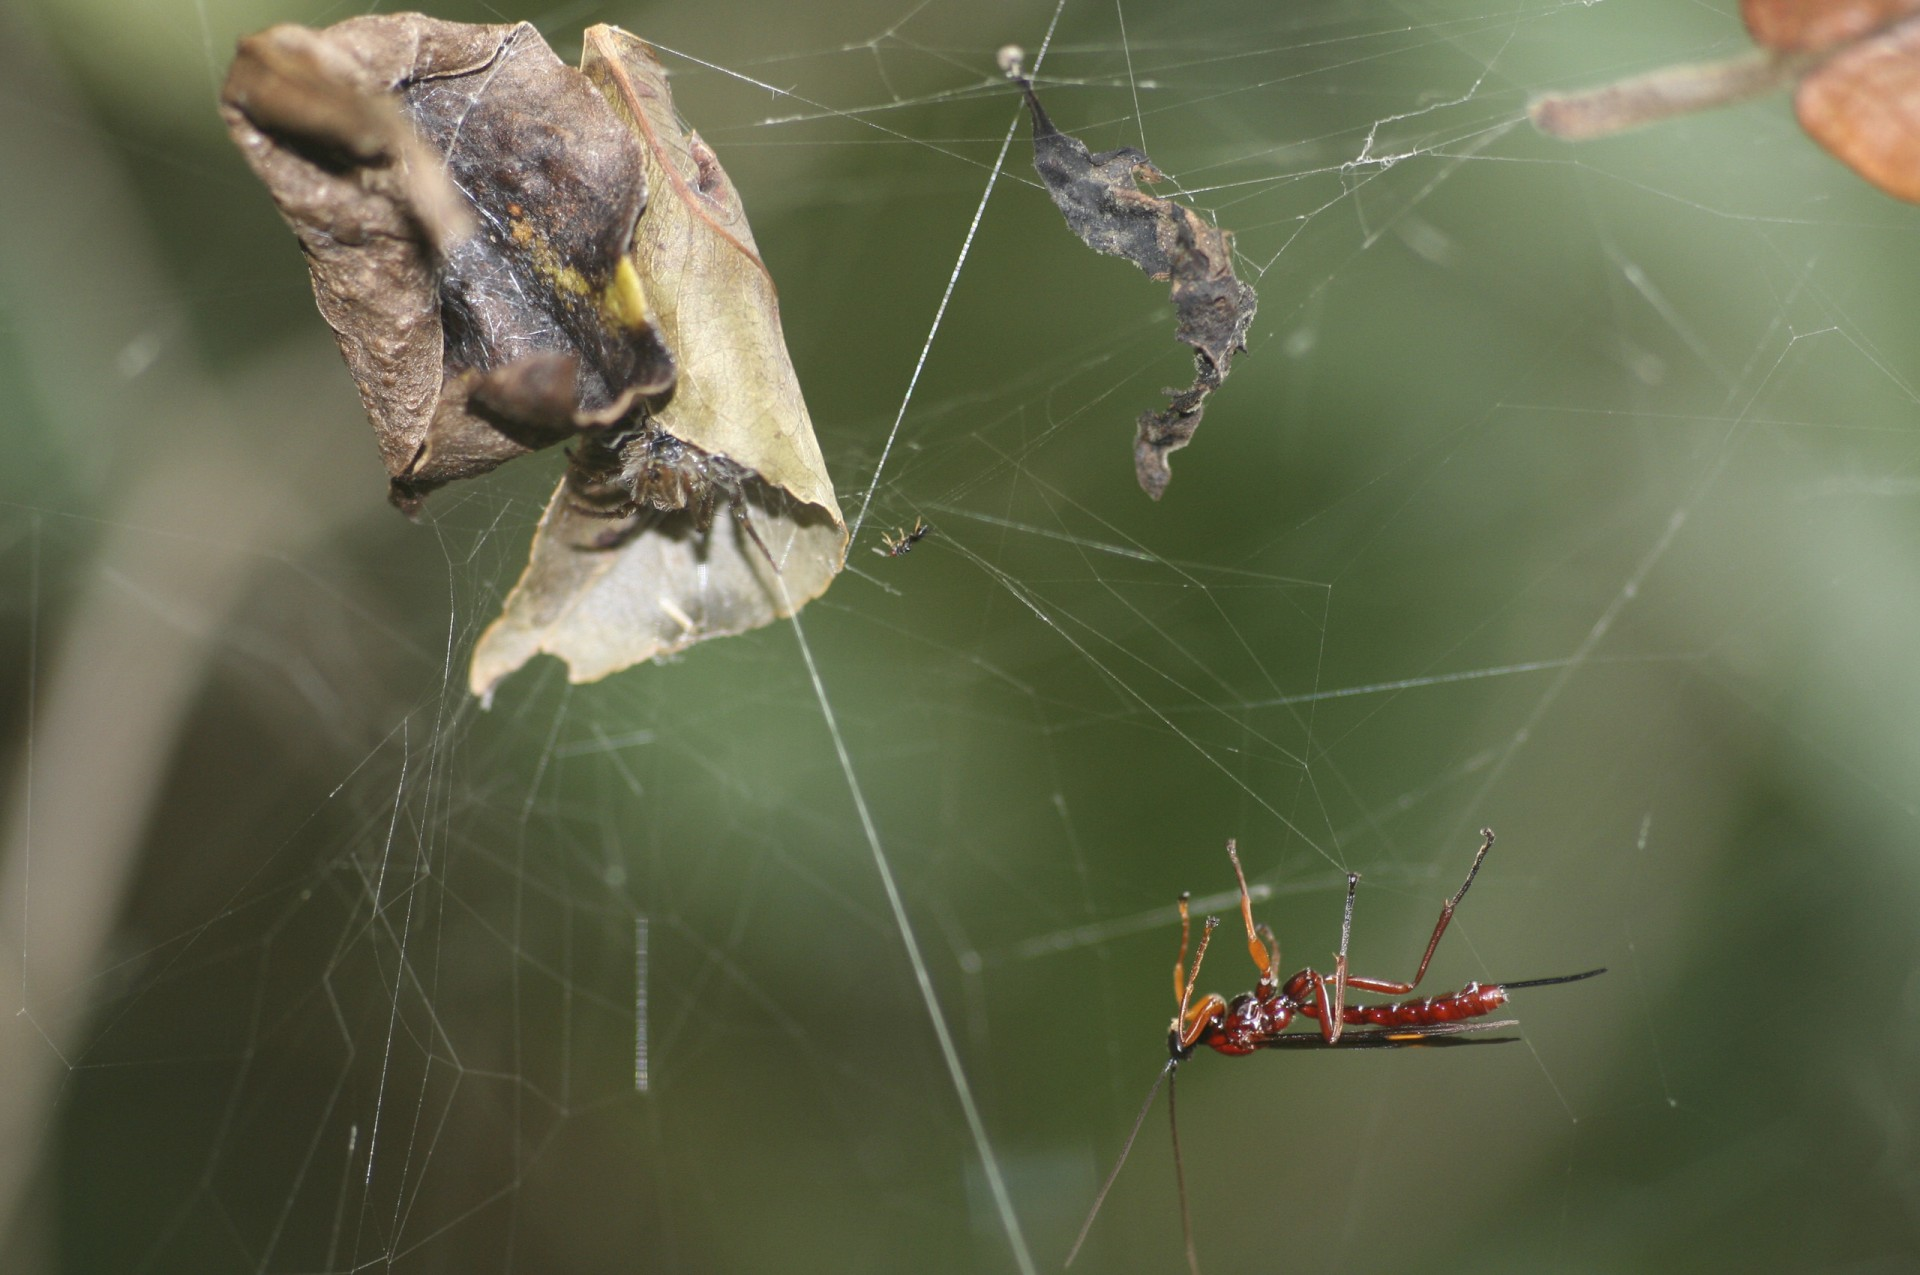 A wasp getting ready to attack a spider